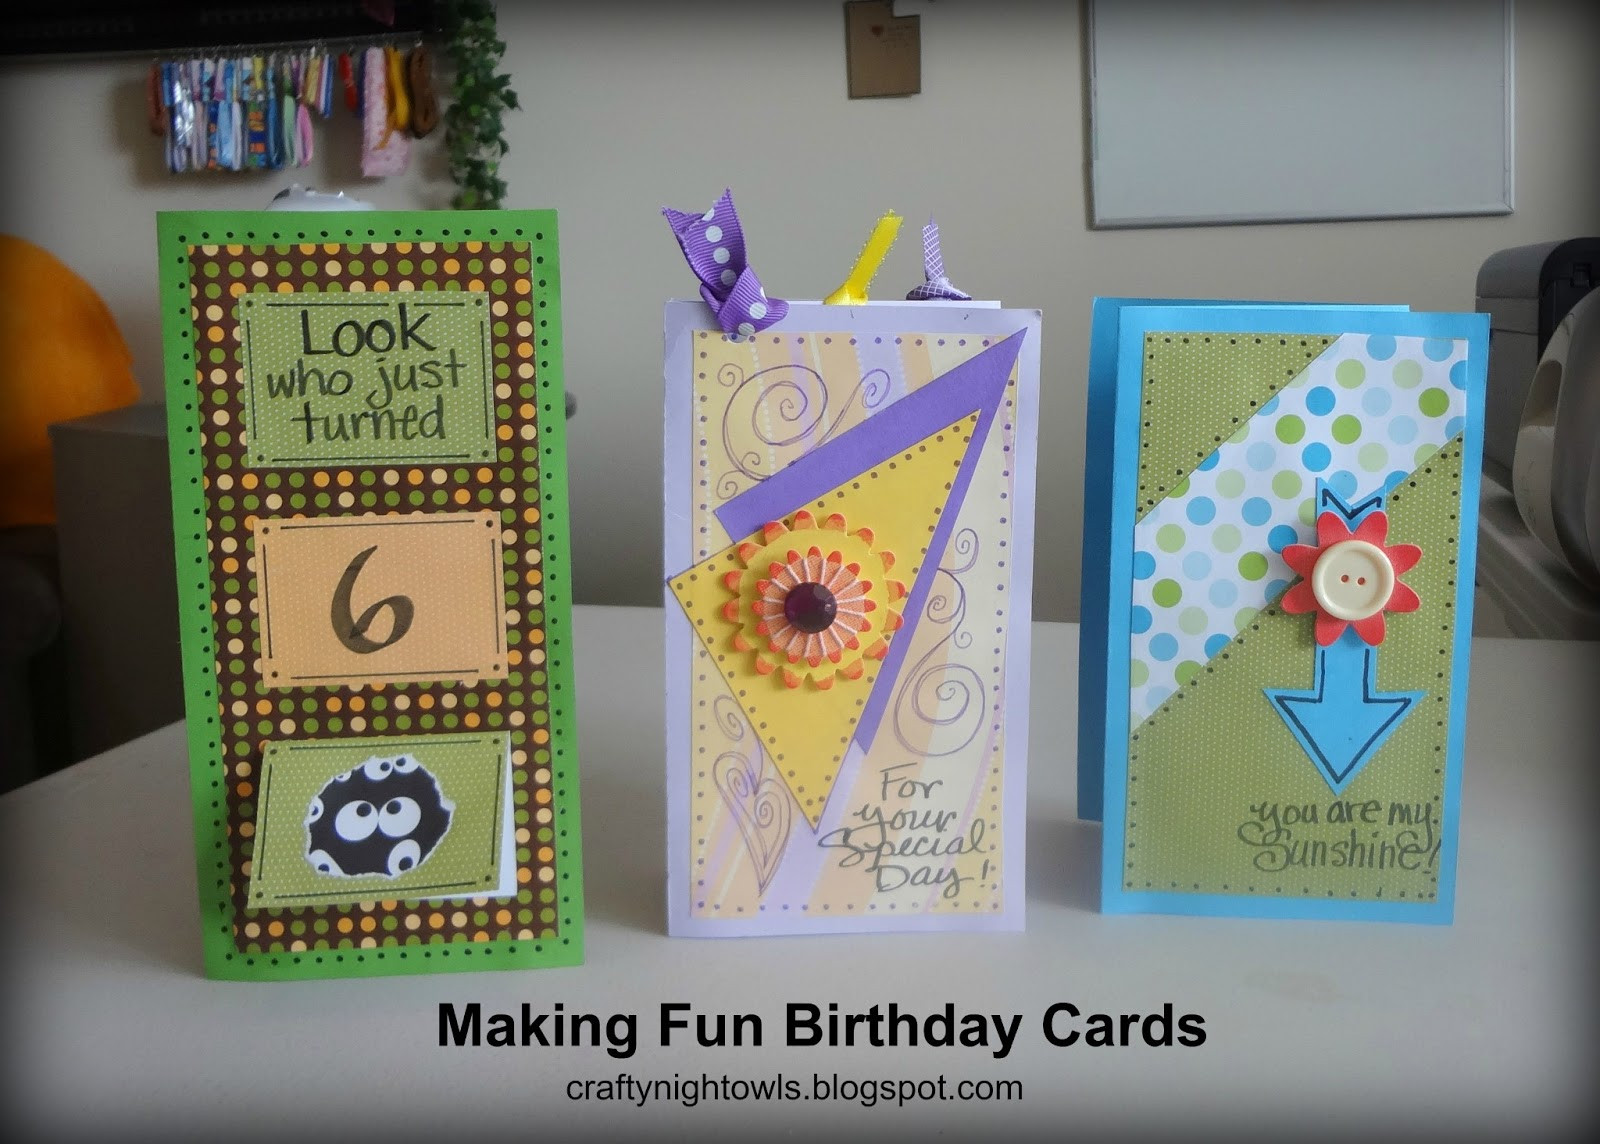 Make A Birthday Card Online  Crafty Night Owls Make Your Own Personalized Birthday Cards